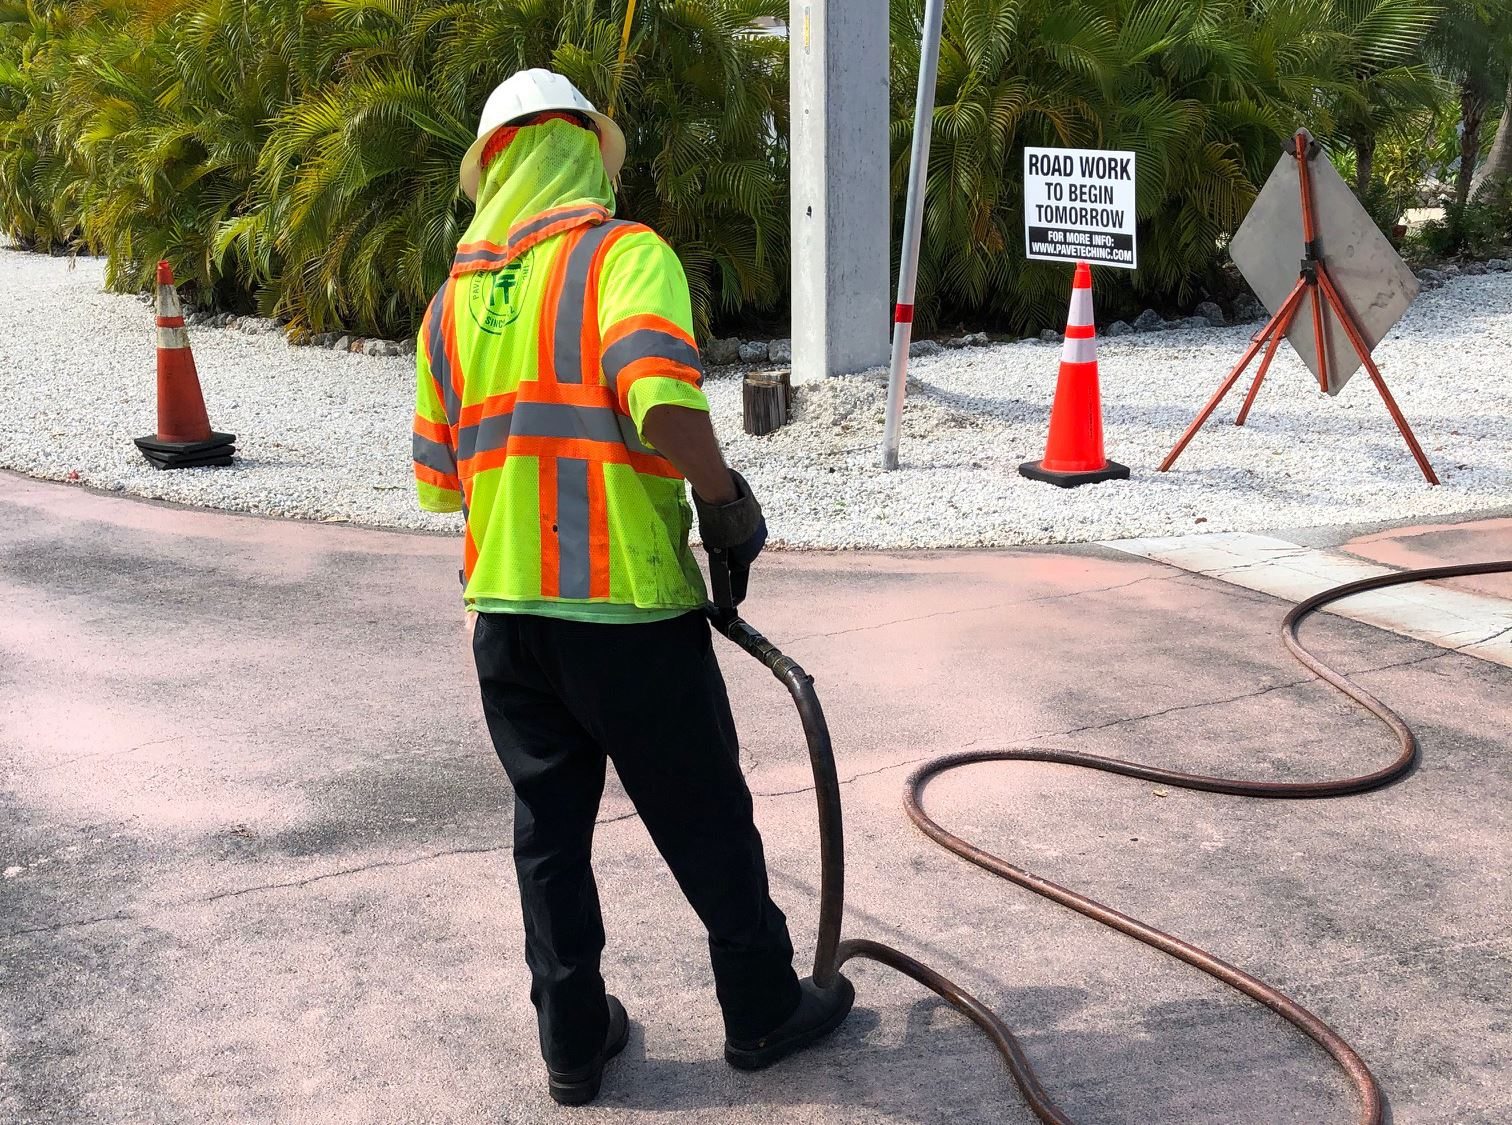 A worker applies pavement preservation liquid on a side road with construction signage behind him.